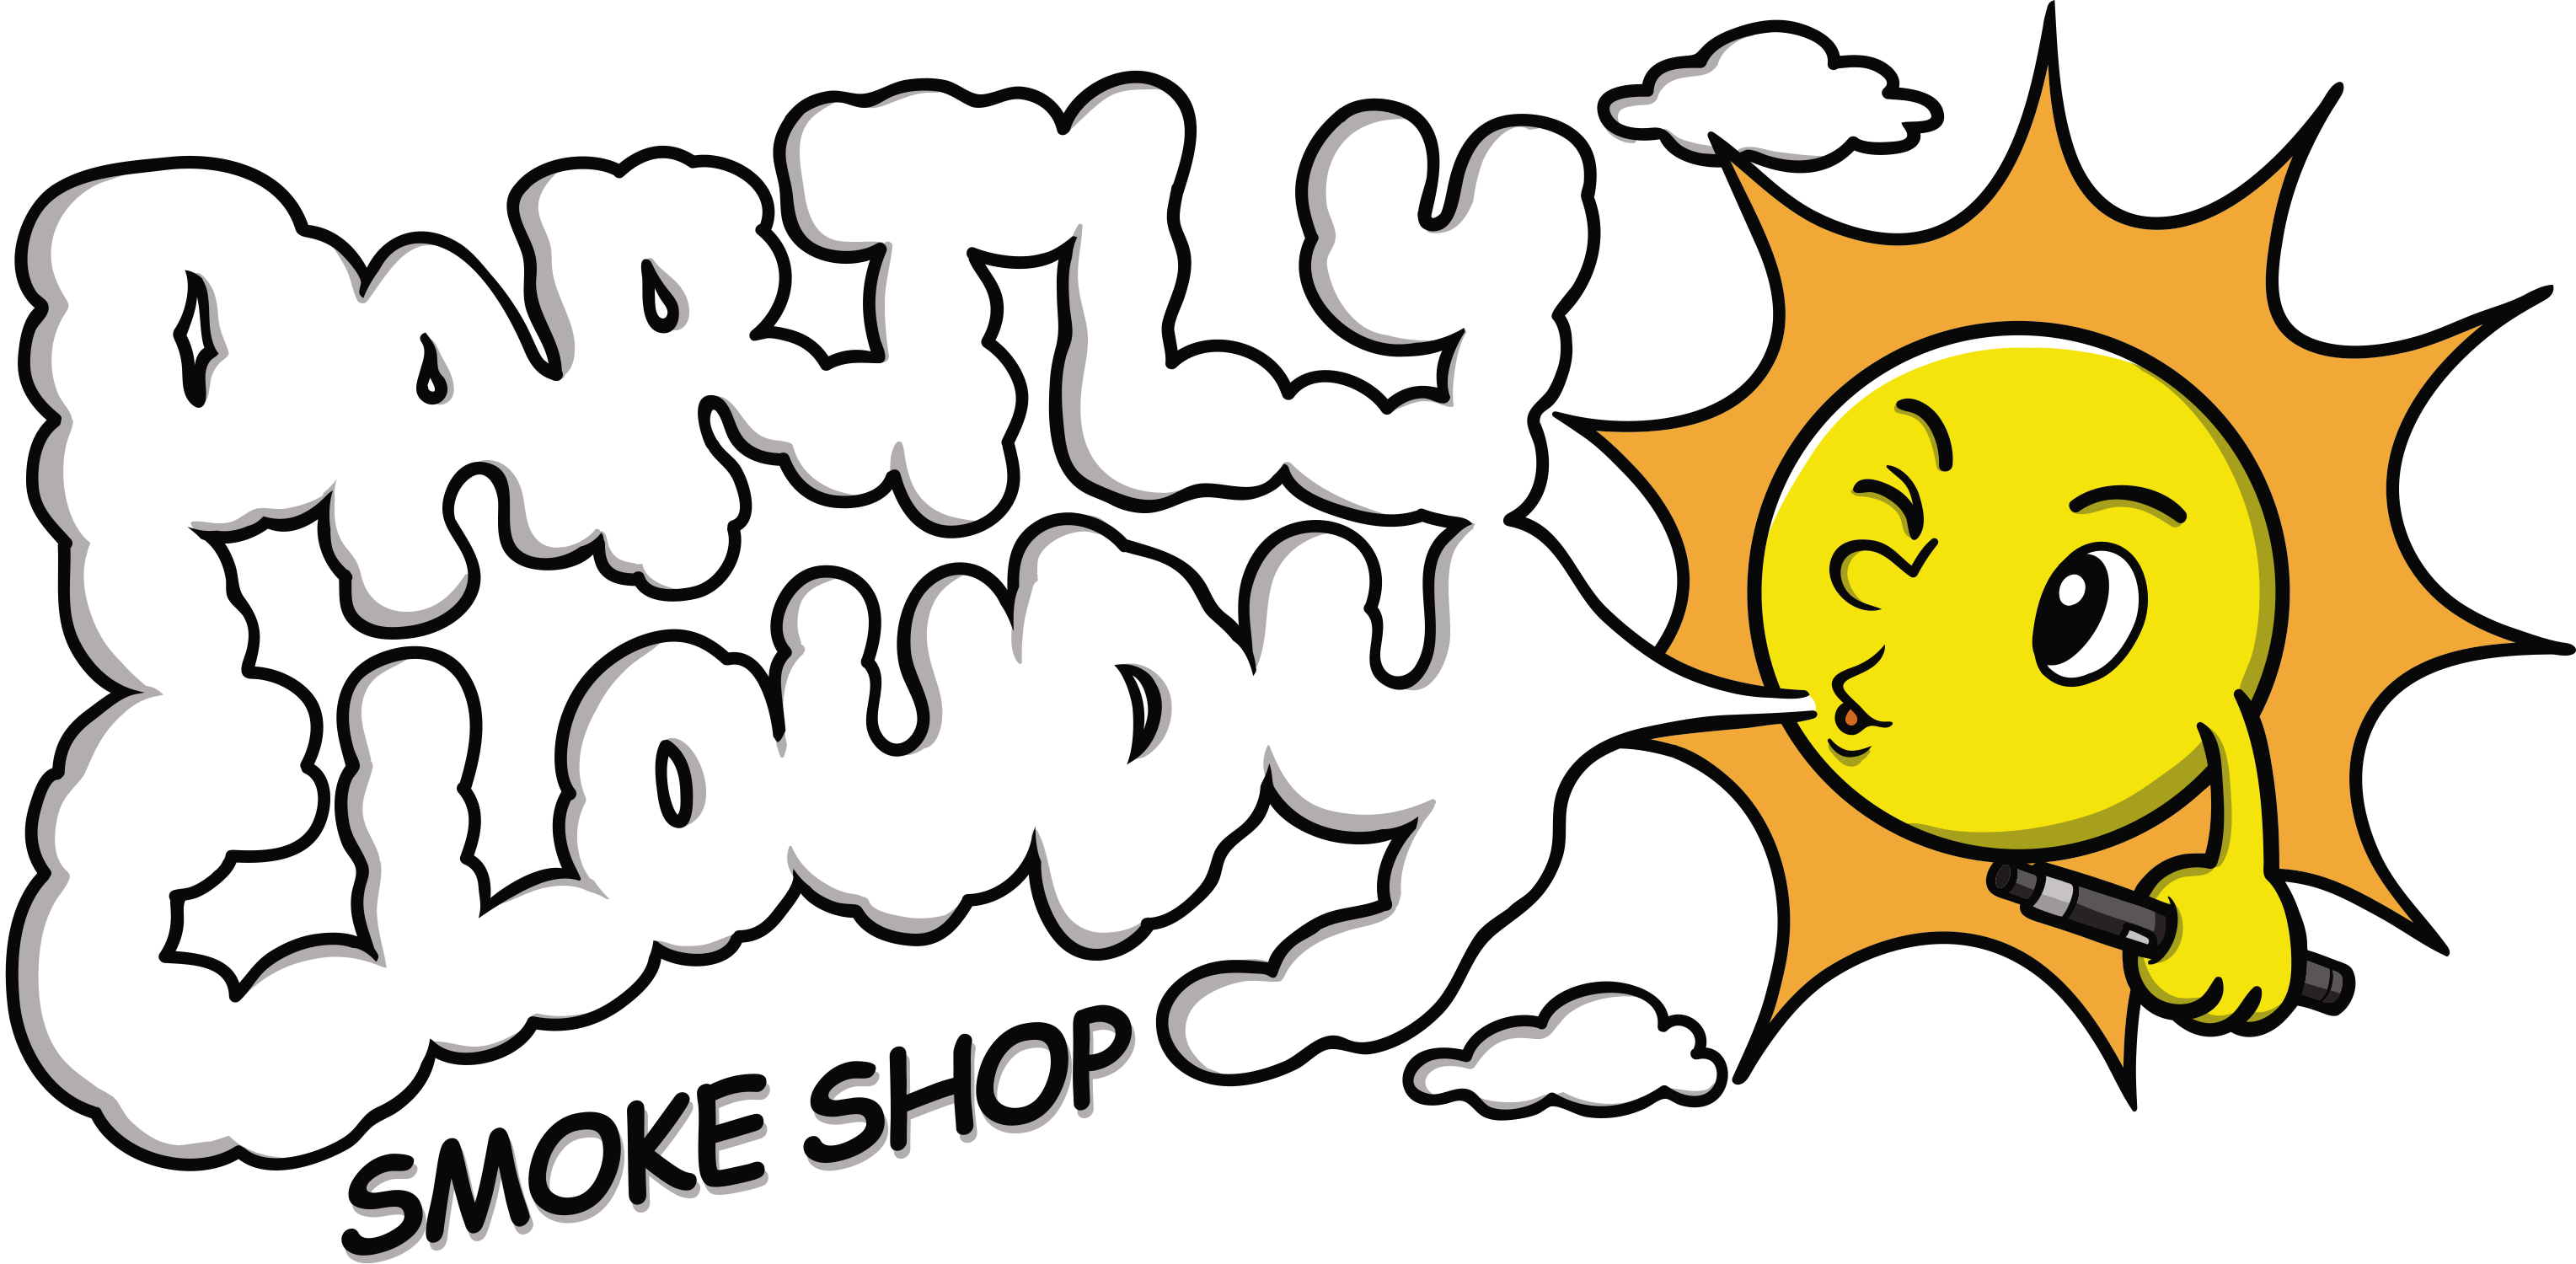 Partly Cloudy Smoke Shop